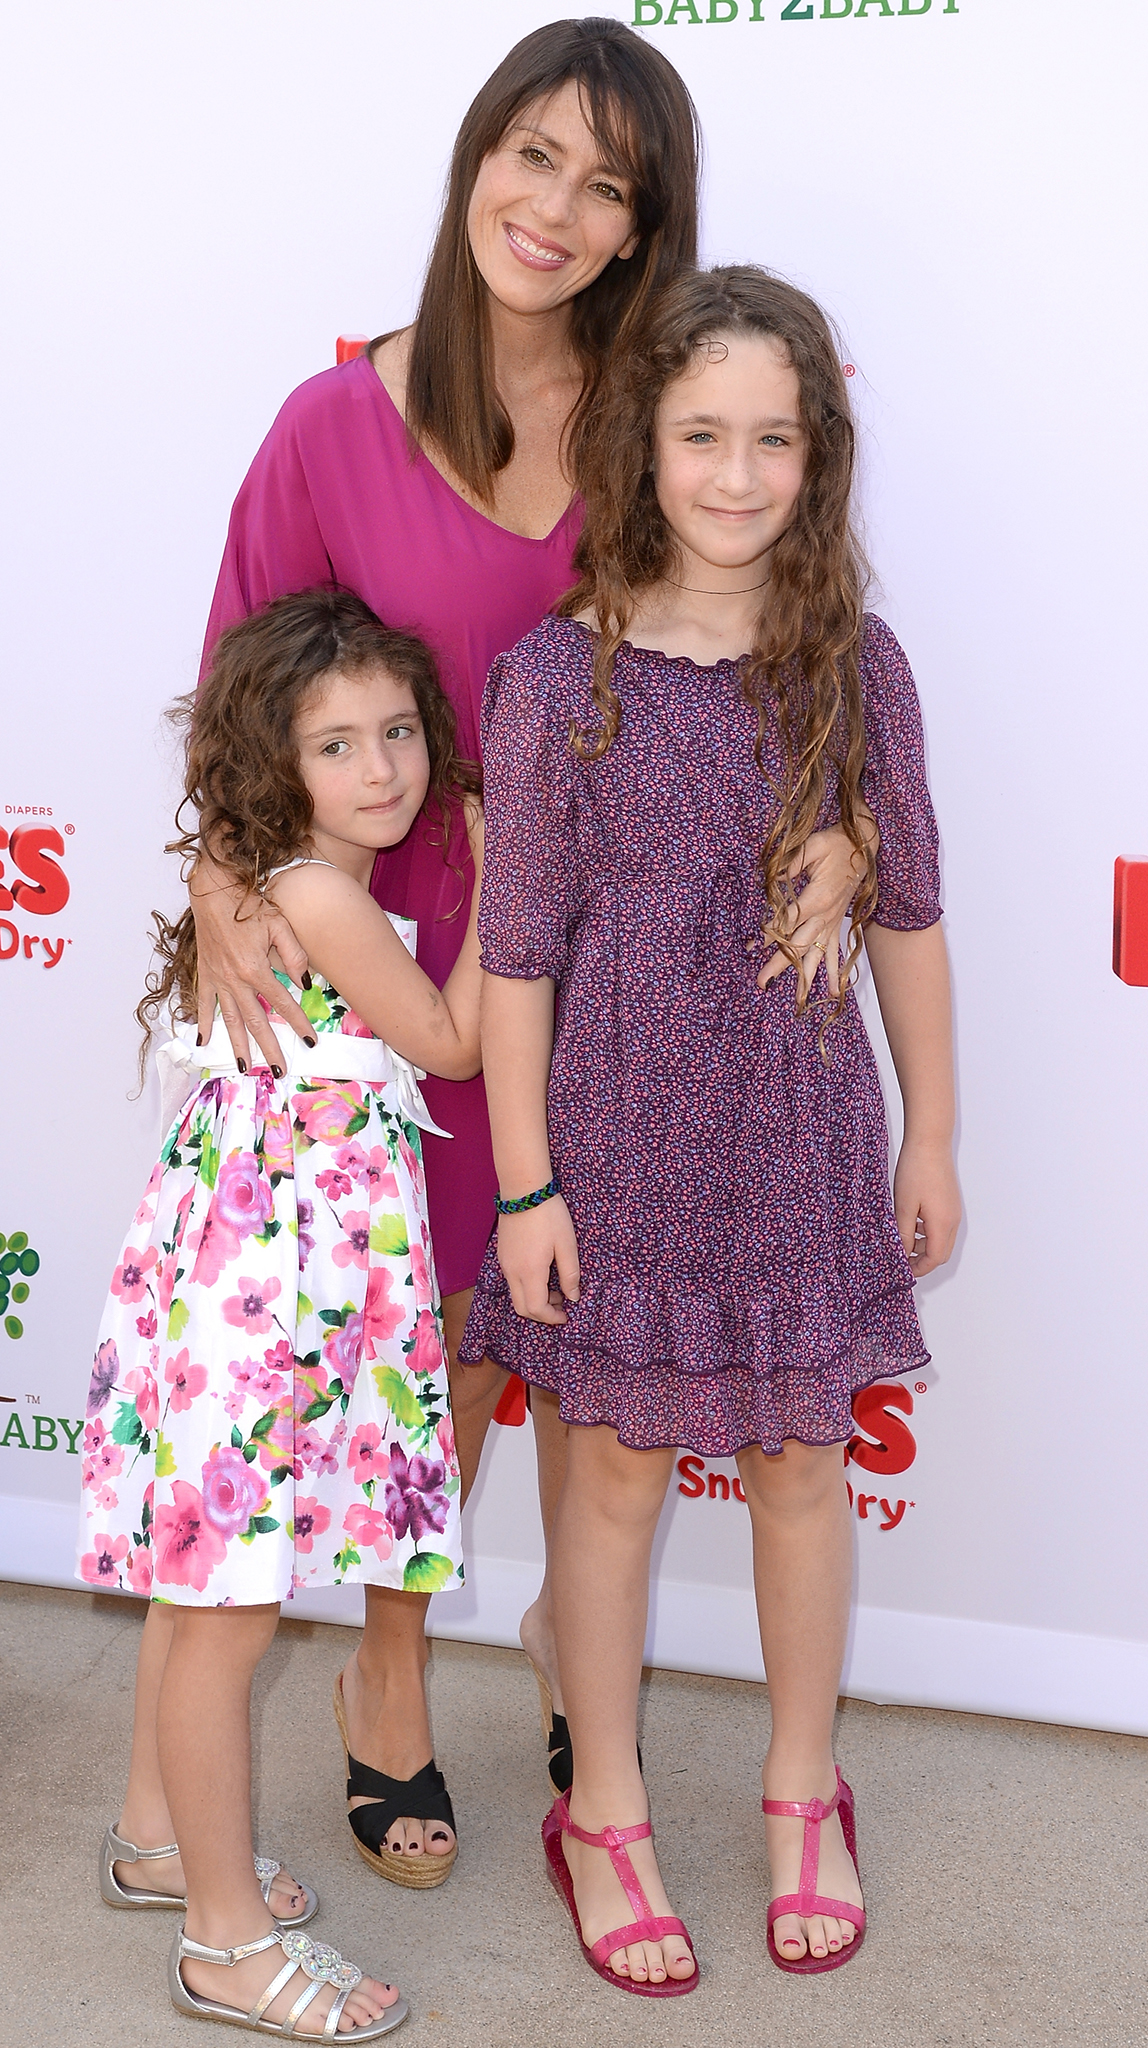 Soleil Moon Frye with her daughters (Getty Images)